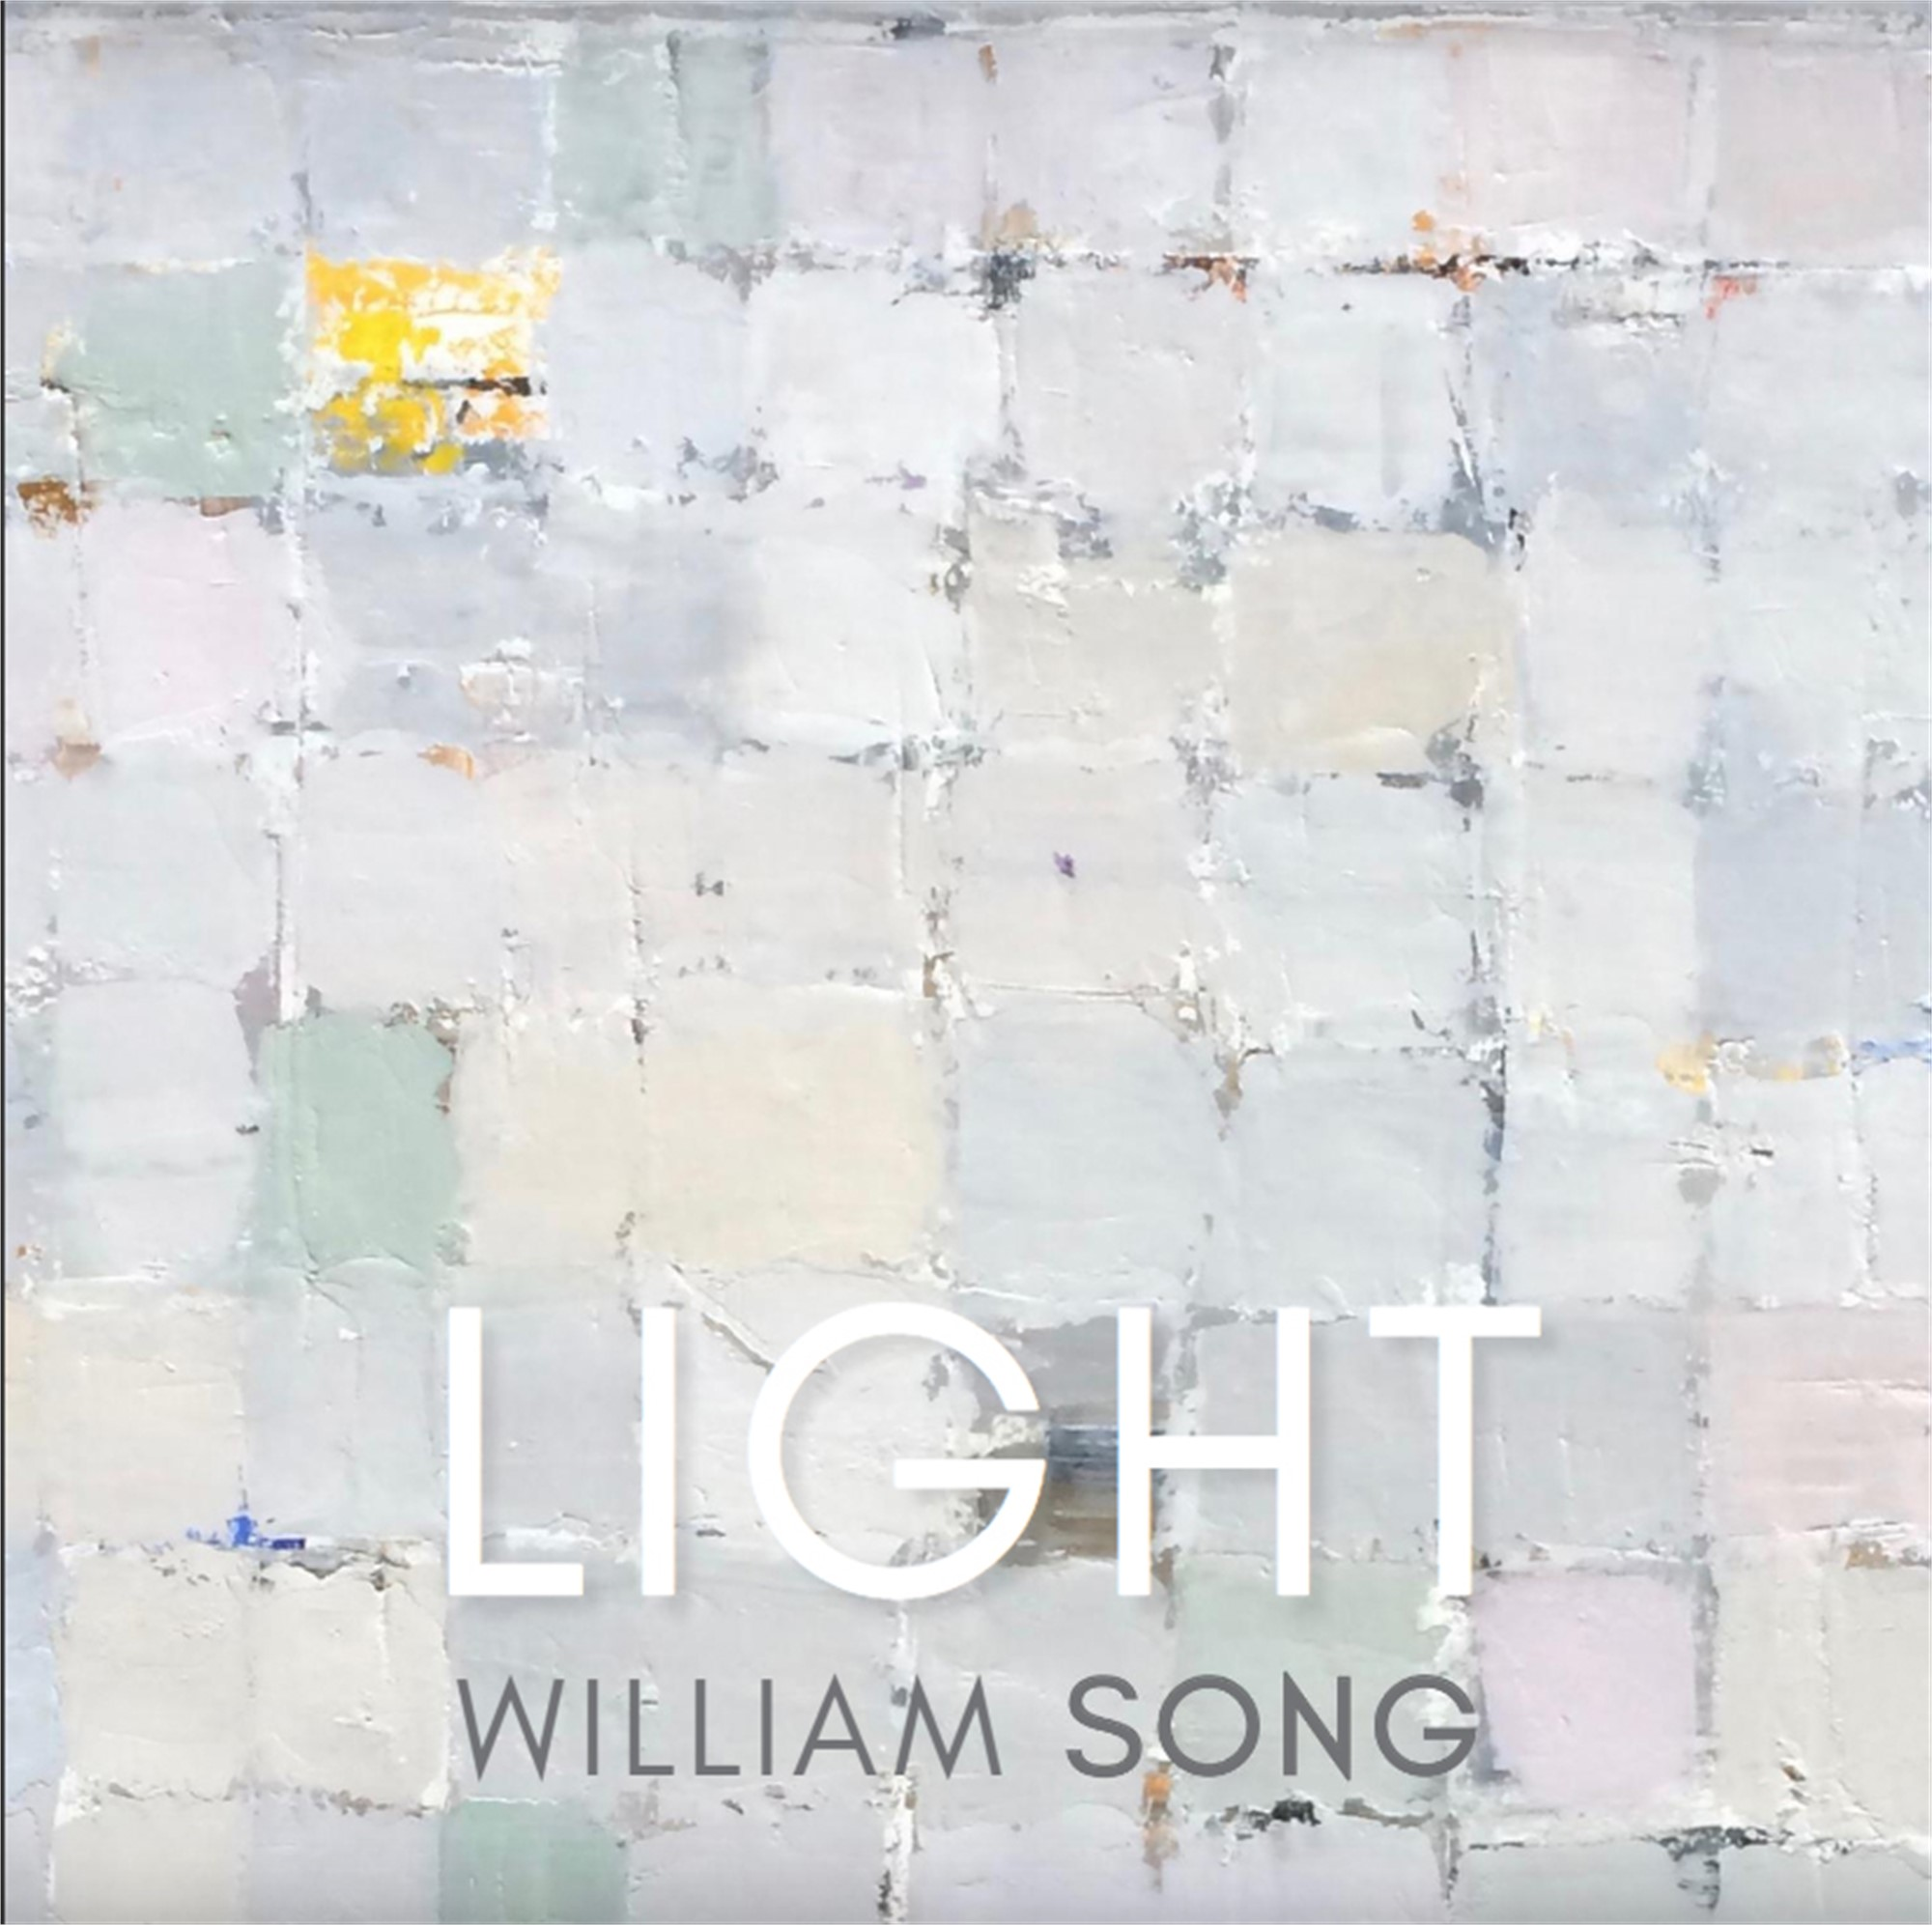 LIGHT | exhibition catalog by William Song